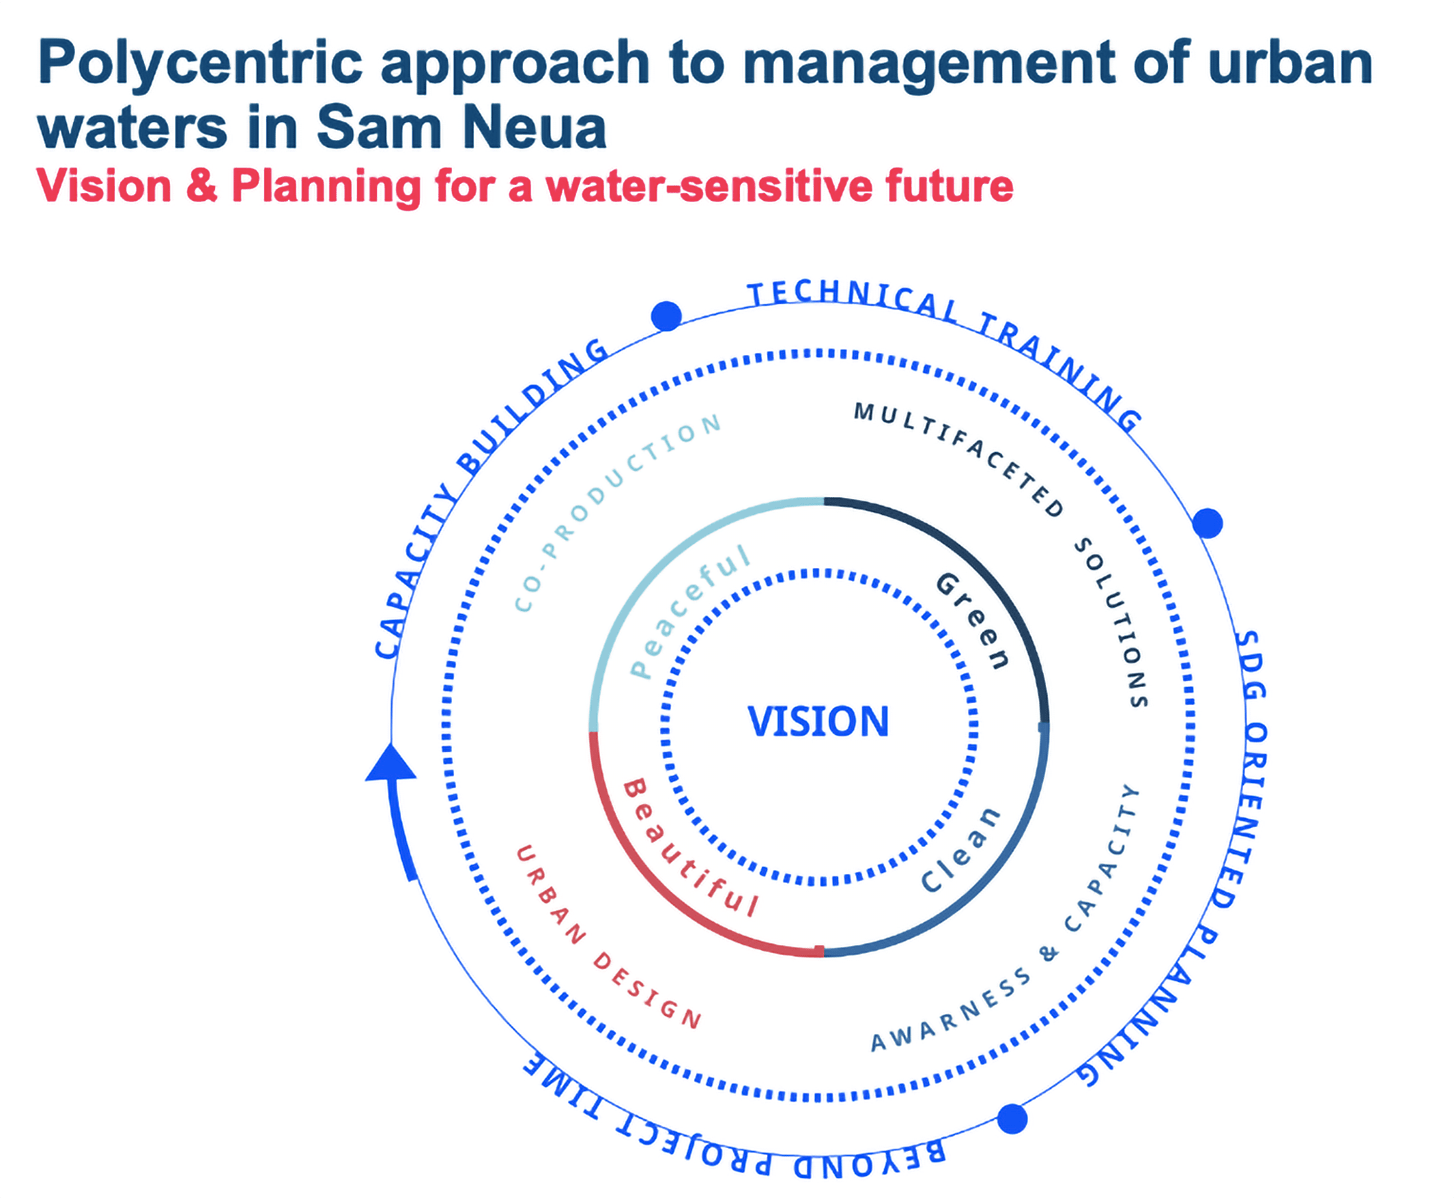 Polycentric approach to management of urban waters in Sam Neua: Vision & planning for a water-sensitive future